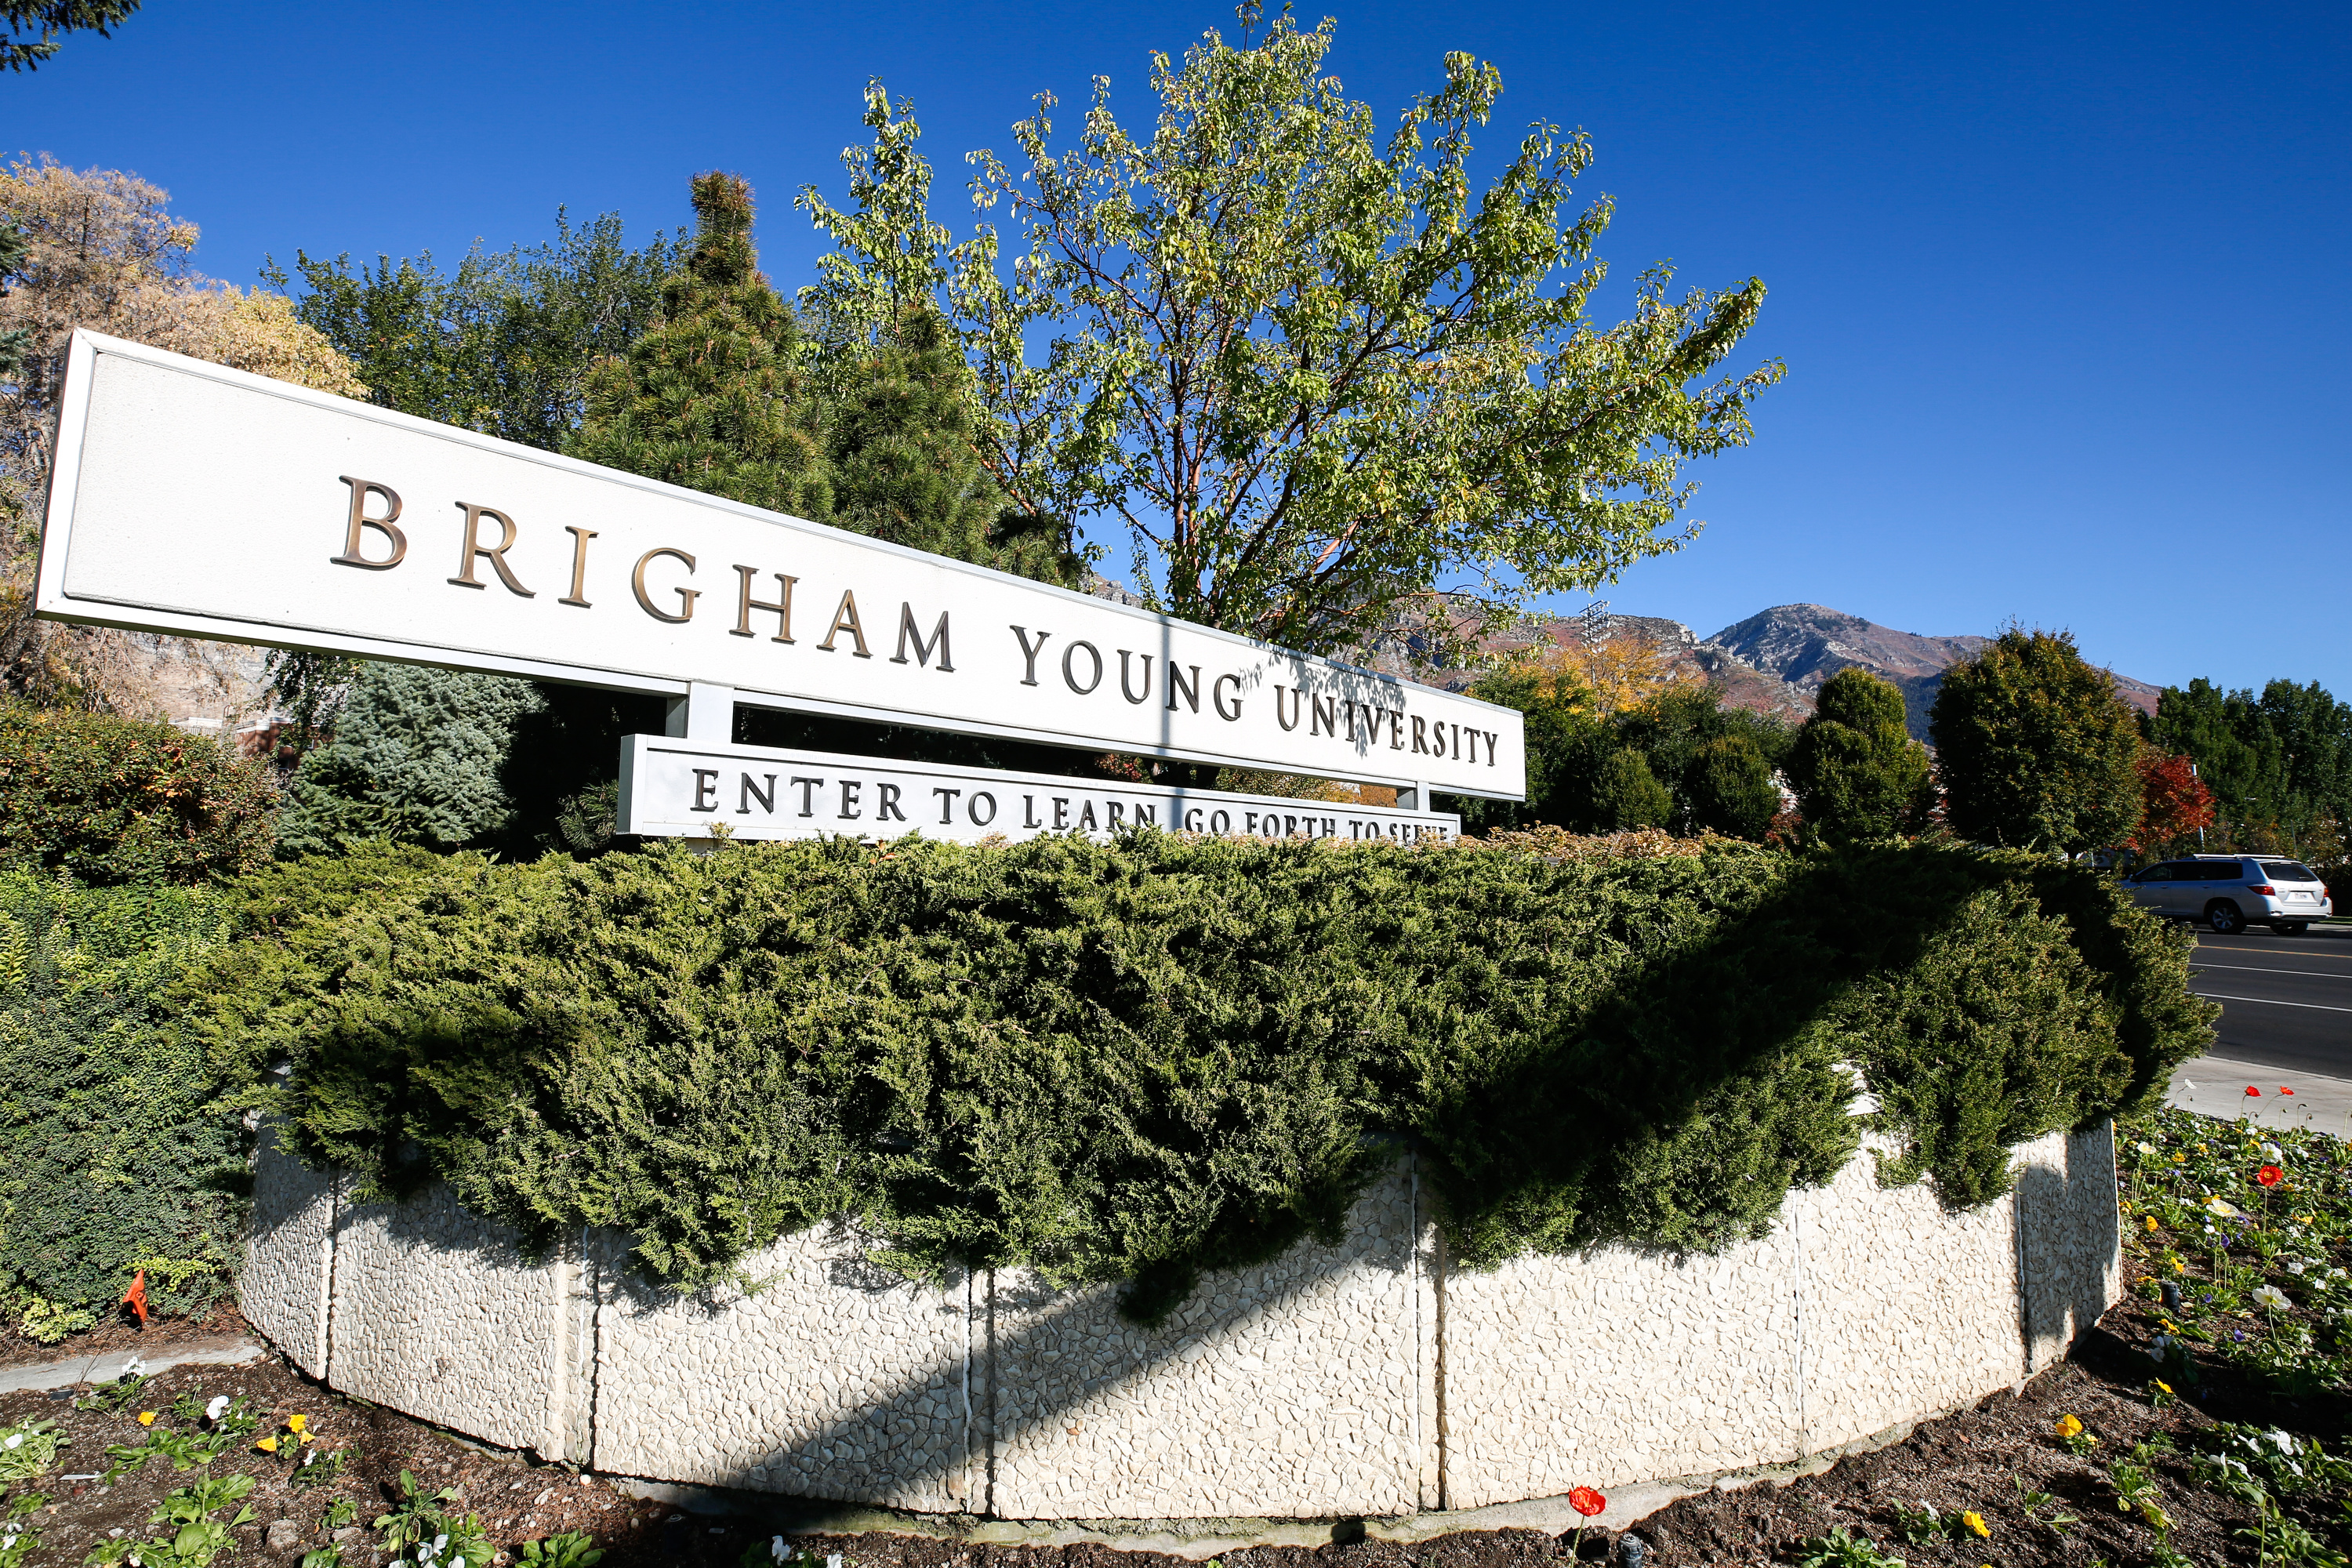 The Brigham Young University campus in Provo is pictured in 2020.